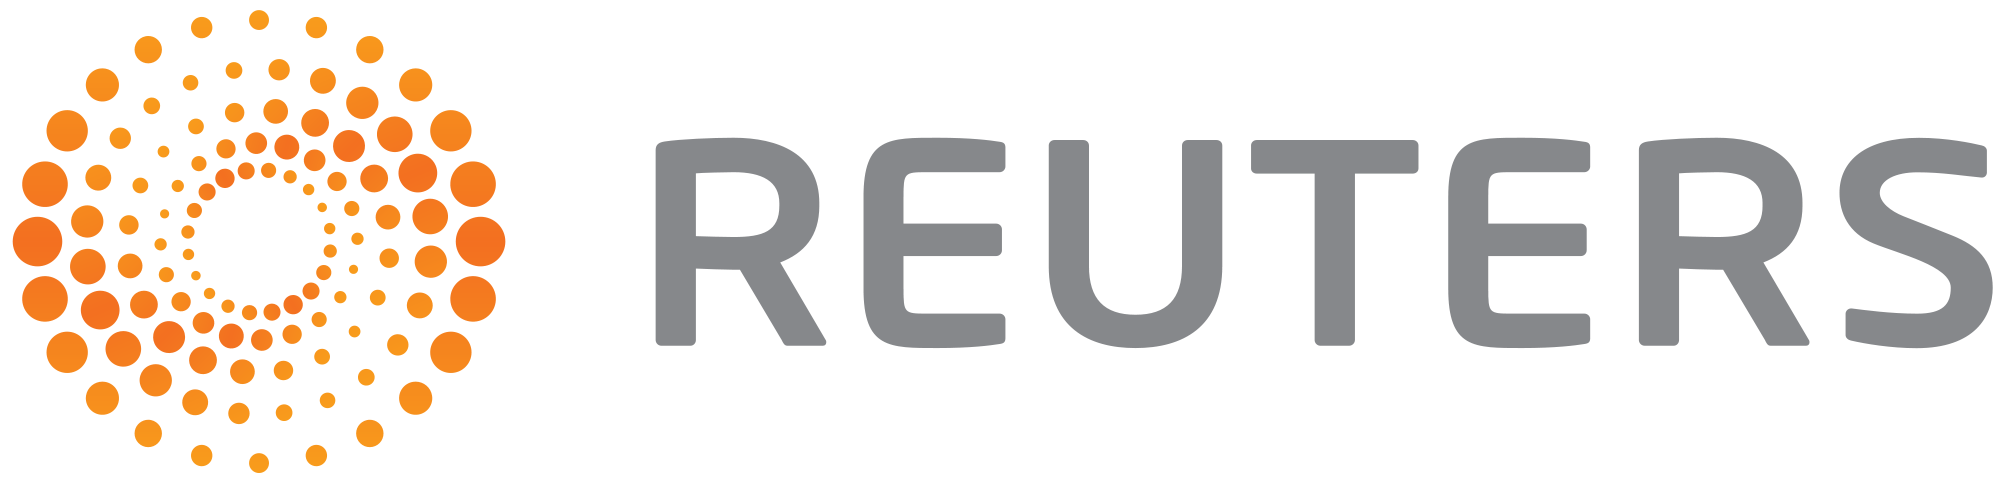 7 - Reuters 2 - Compressed.png